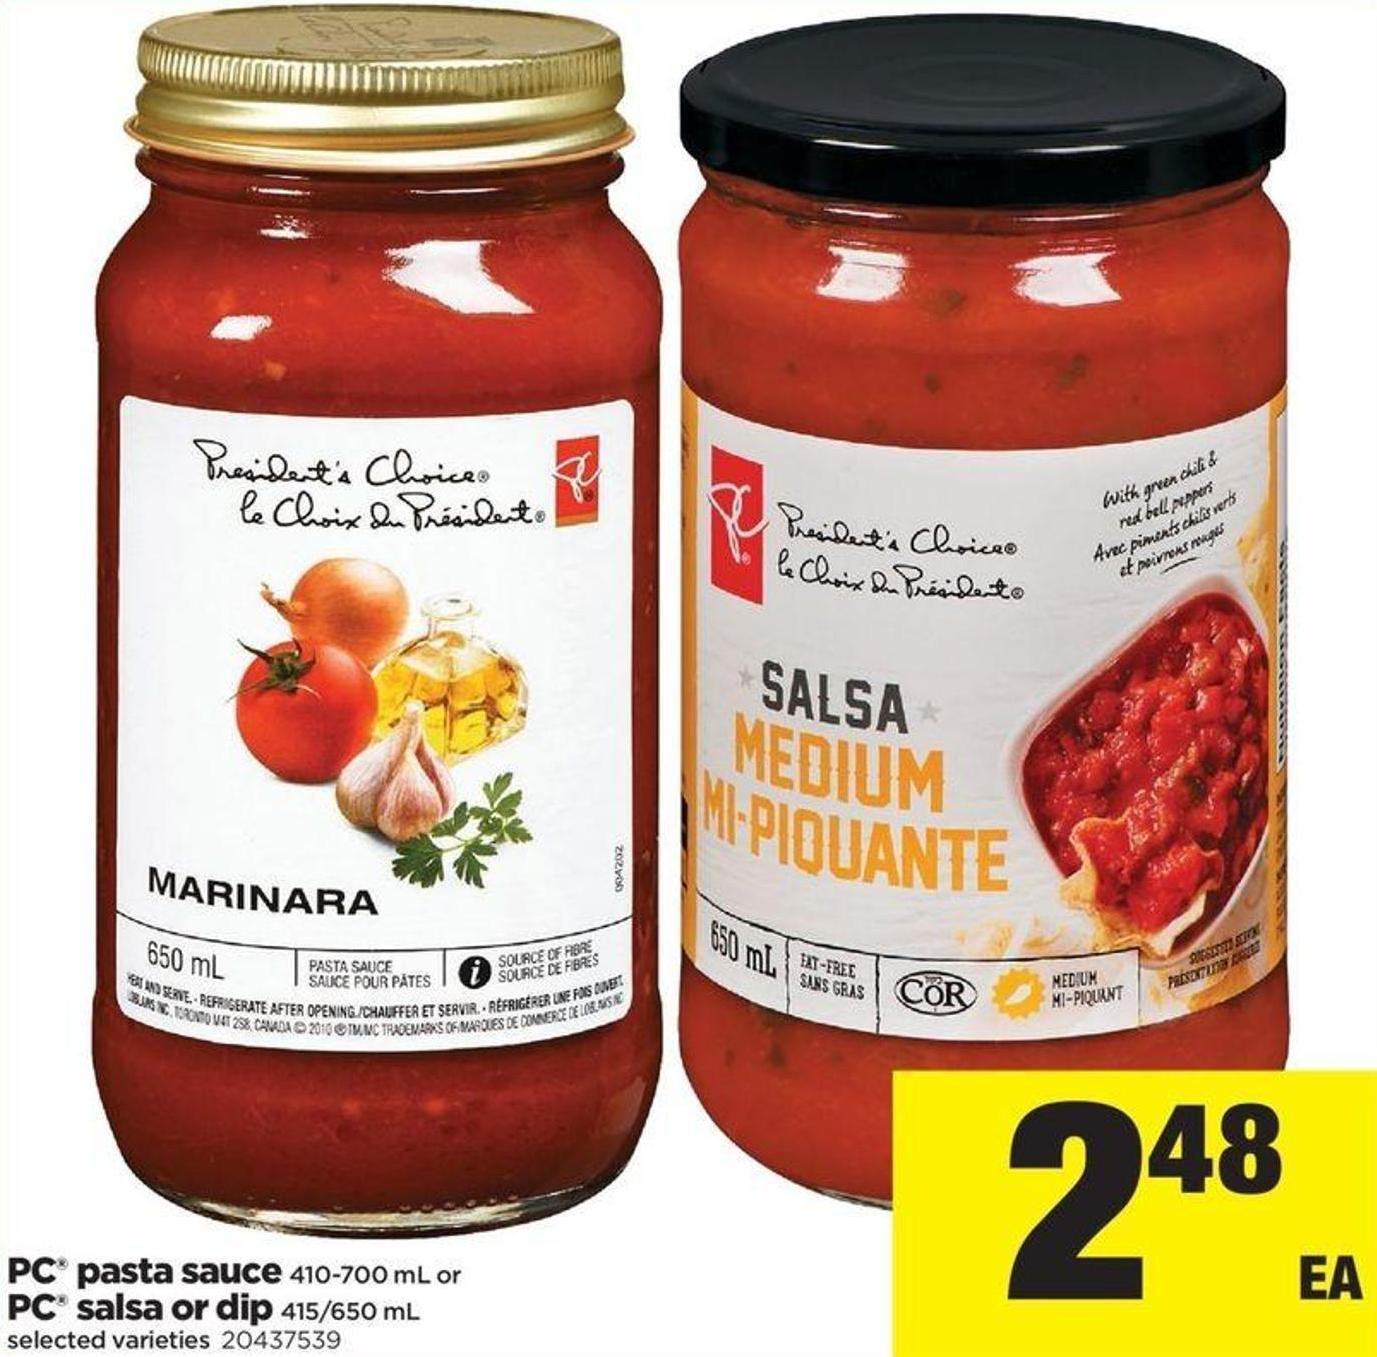 PC Pasta Sauce - 410-700 Ml Or PC Salsa Or Dip - 415/650 Ml